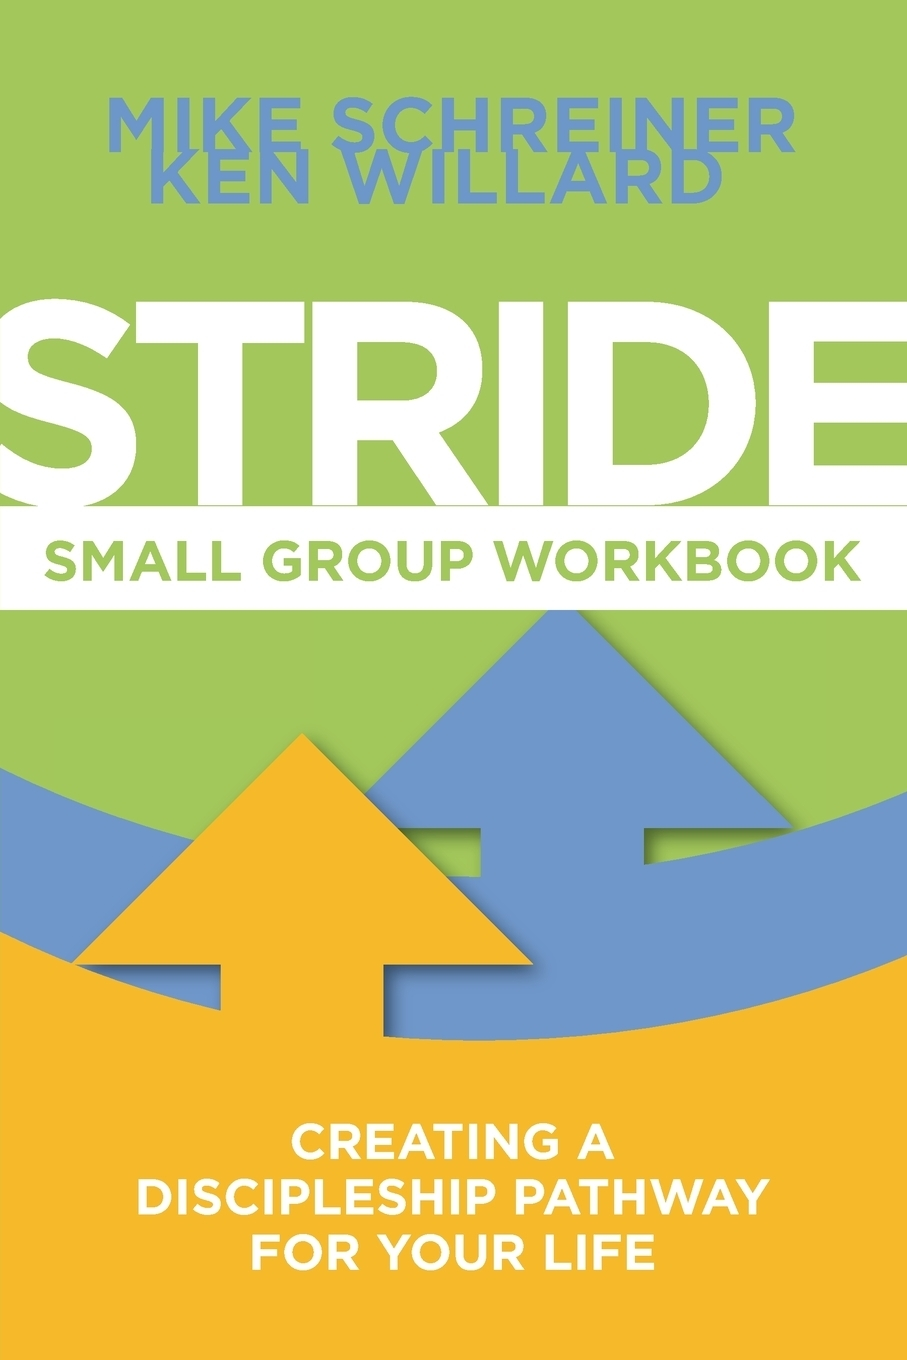 Mike Schreiner, Ken Willard. Stride Small Group Workbook. Creating a Discipleship Pathway for Your Life